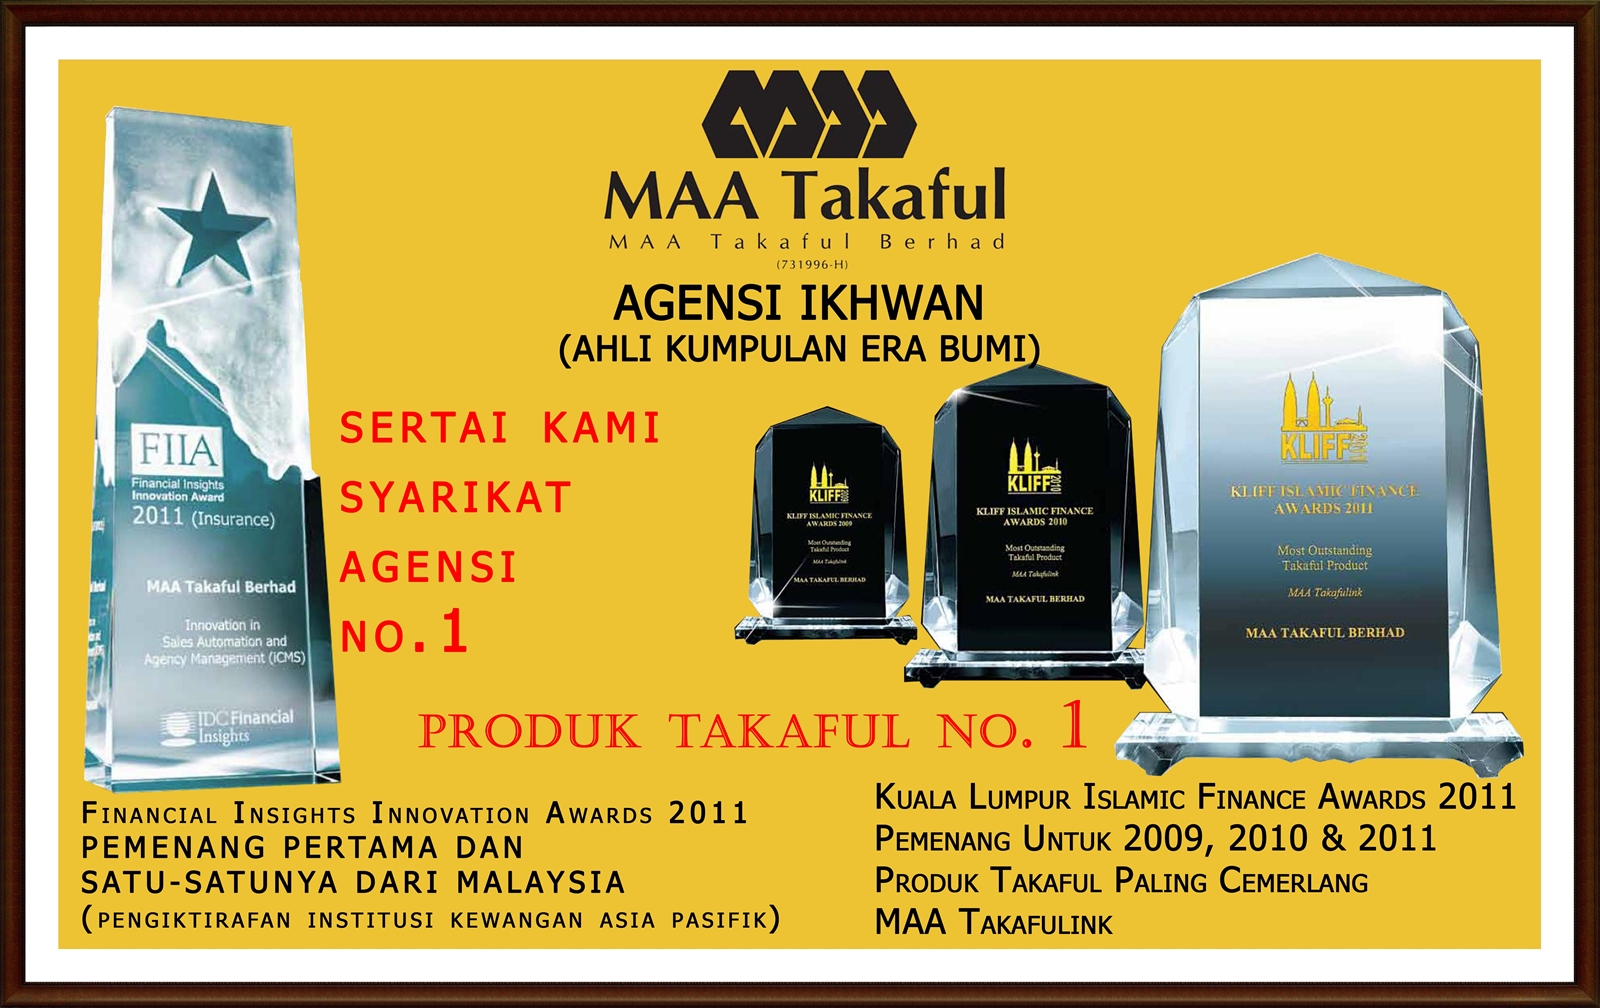 Maa Takaful Berhad Agensi Ikhwan Bhd